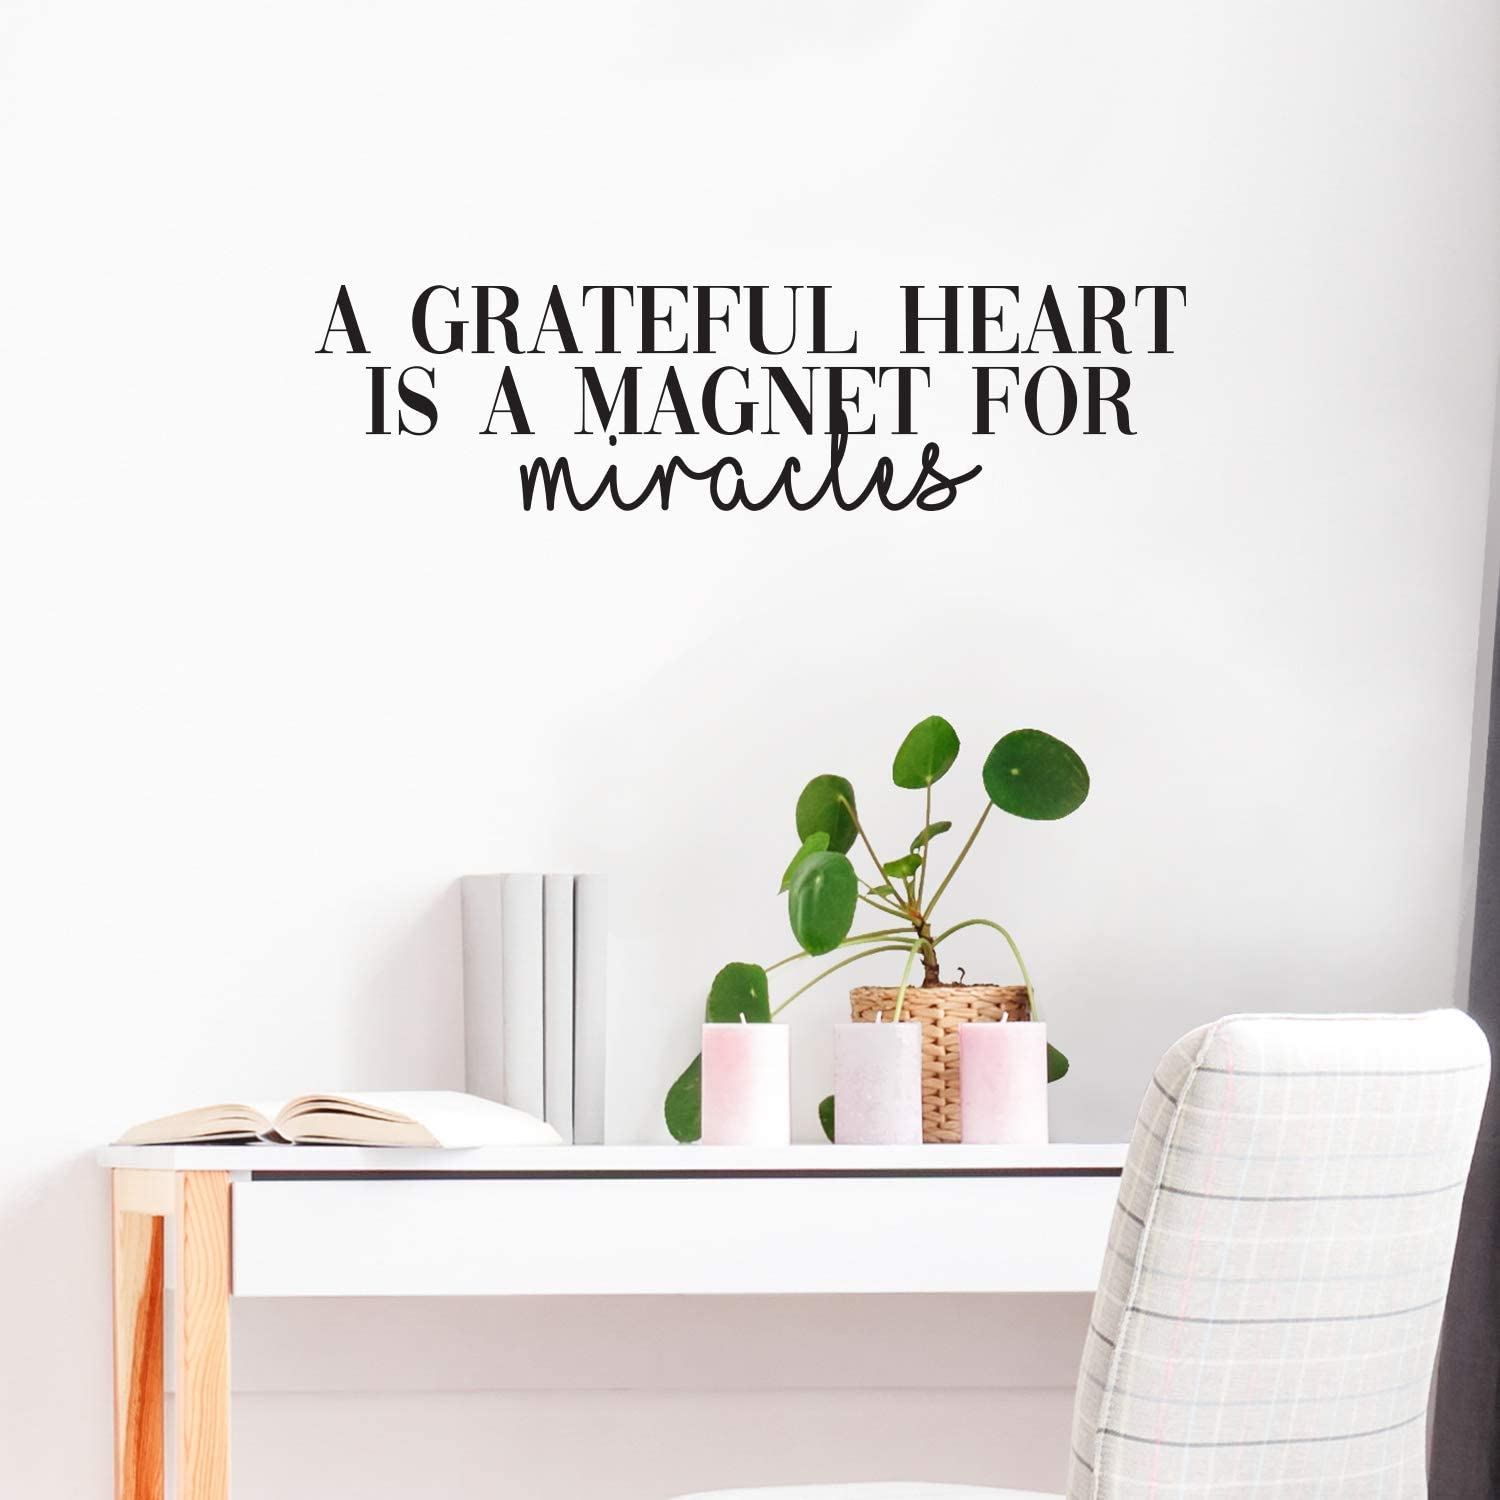 """Vinyl Wall Art Decal - A Grateful Heart is A Magnet for Miracles - 8"""" x 24"""" - Modern Cursive Inspirational Life Quote for Home Bedroom Living Room Office School Classroom Decoration Sticker"""